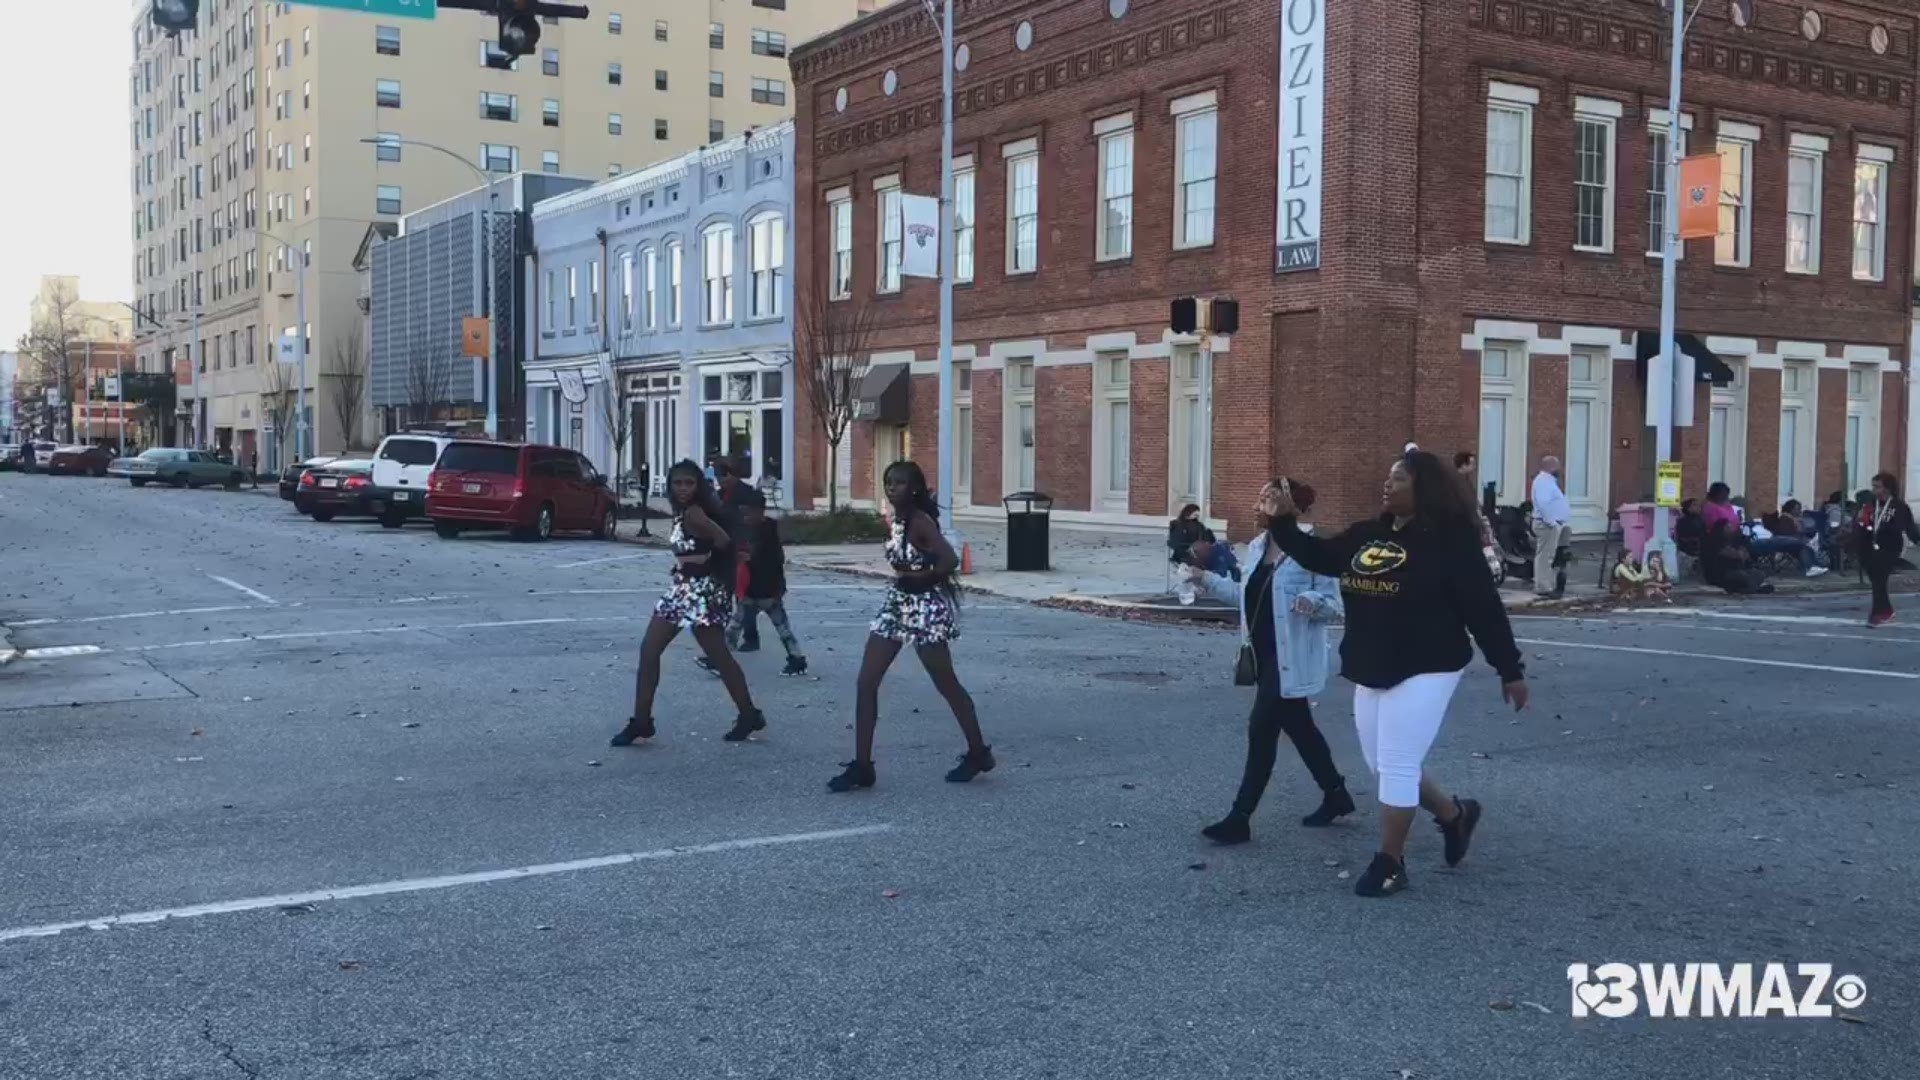 Christmas Downtown Macon 2020 2020 Downtown Macon Christmas Parade canceled due to COVID 19